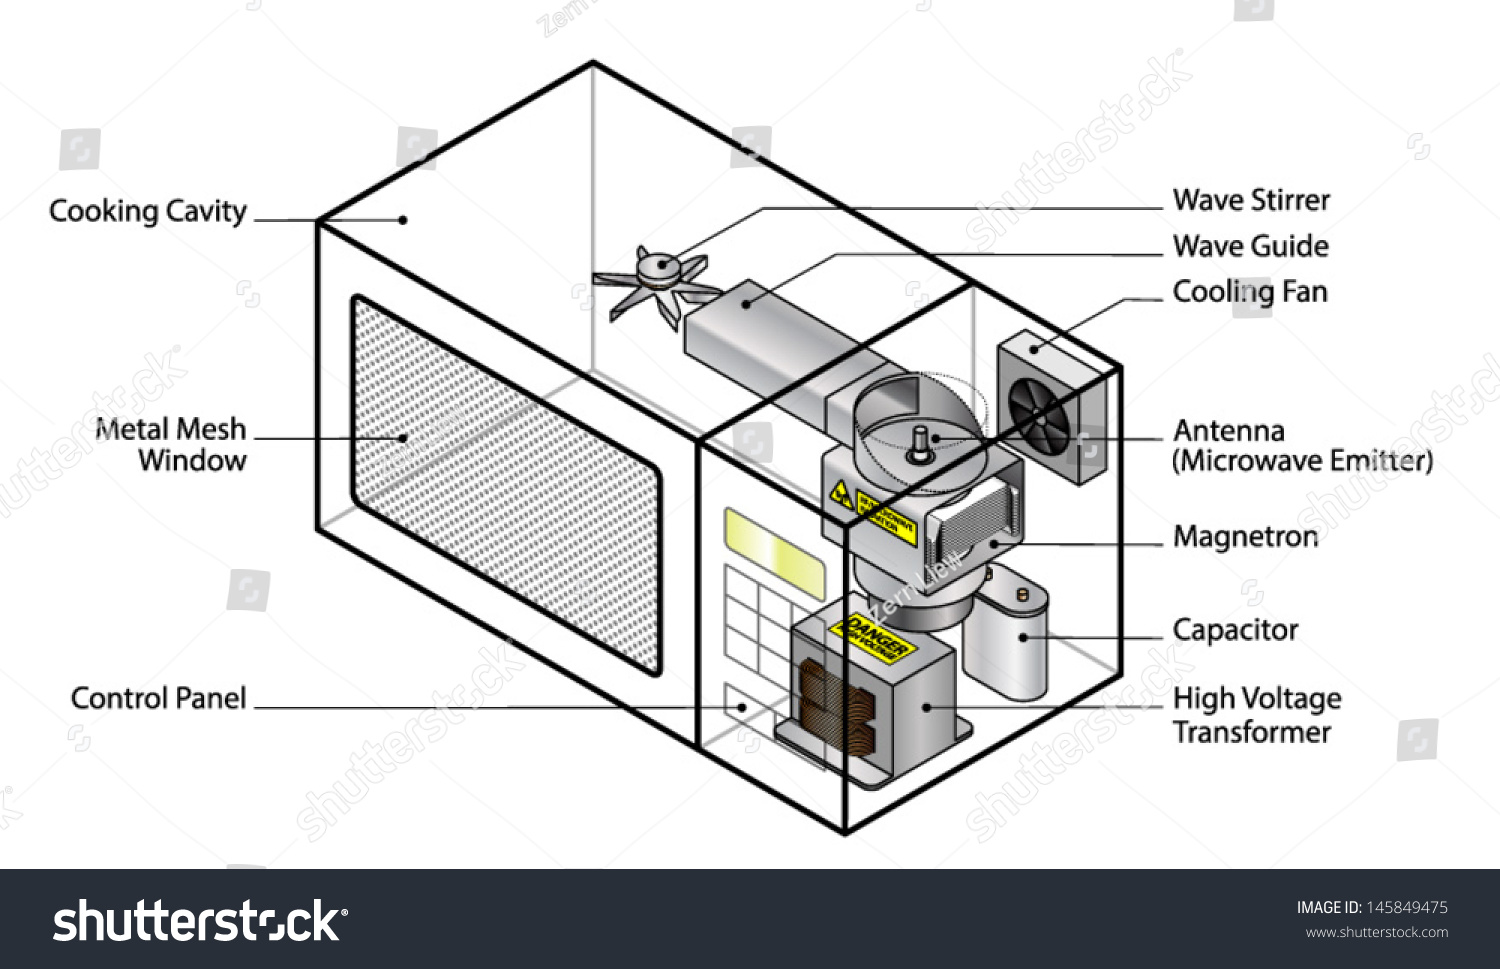 wiring diagrams for microwave